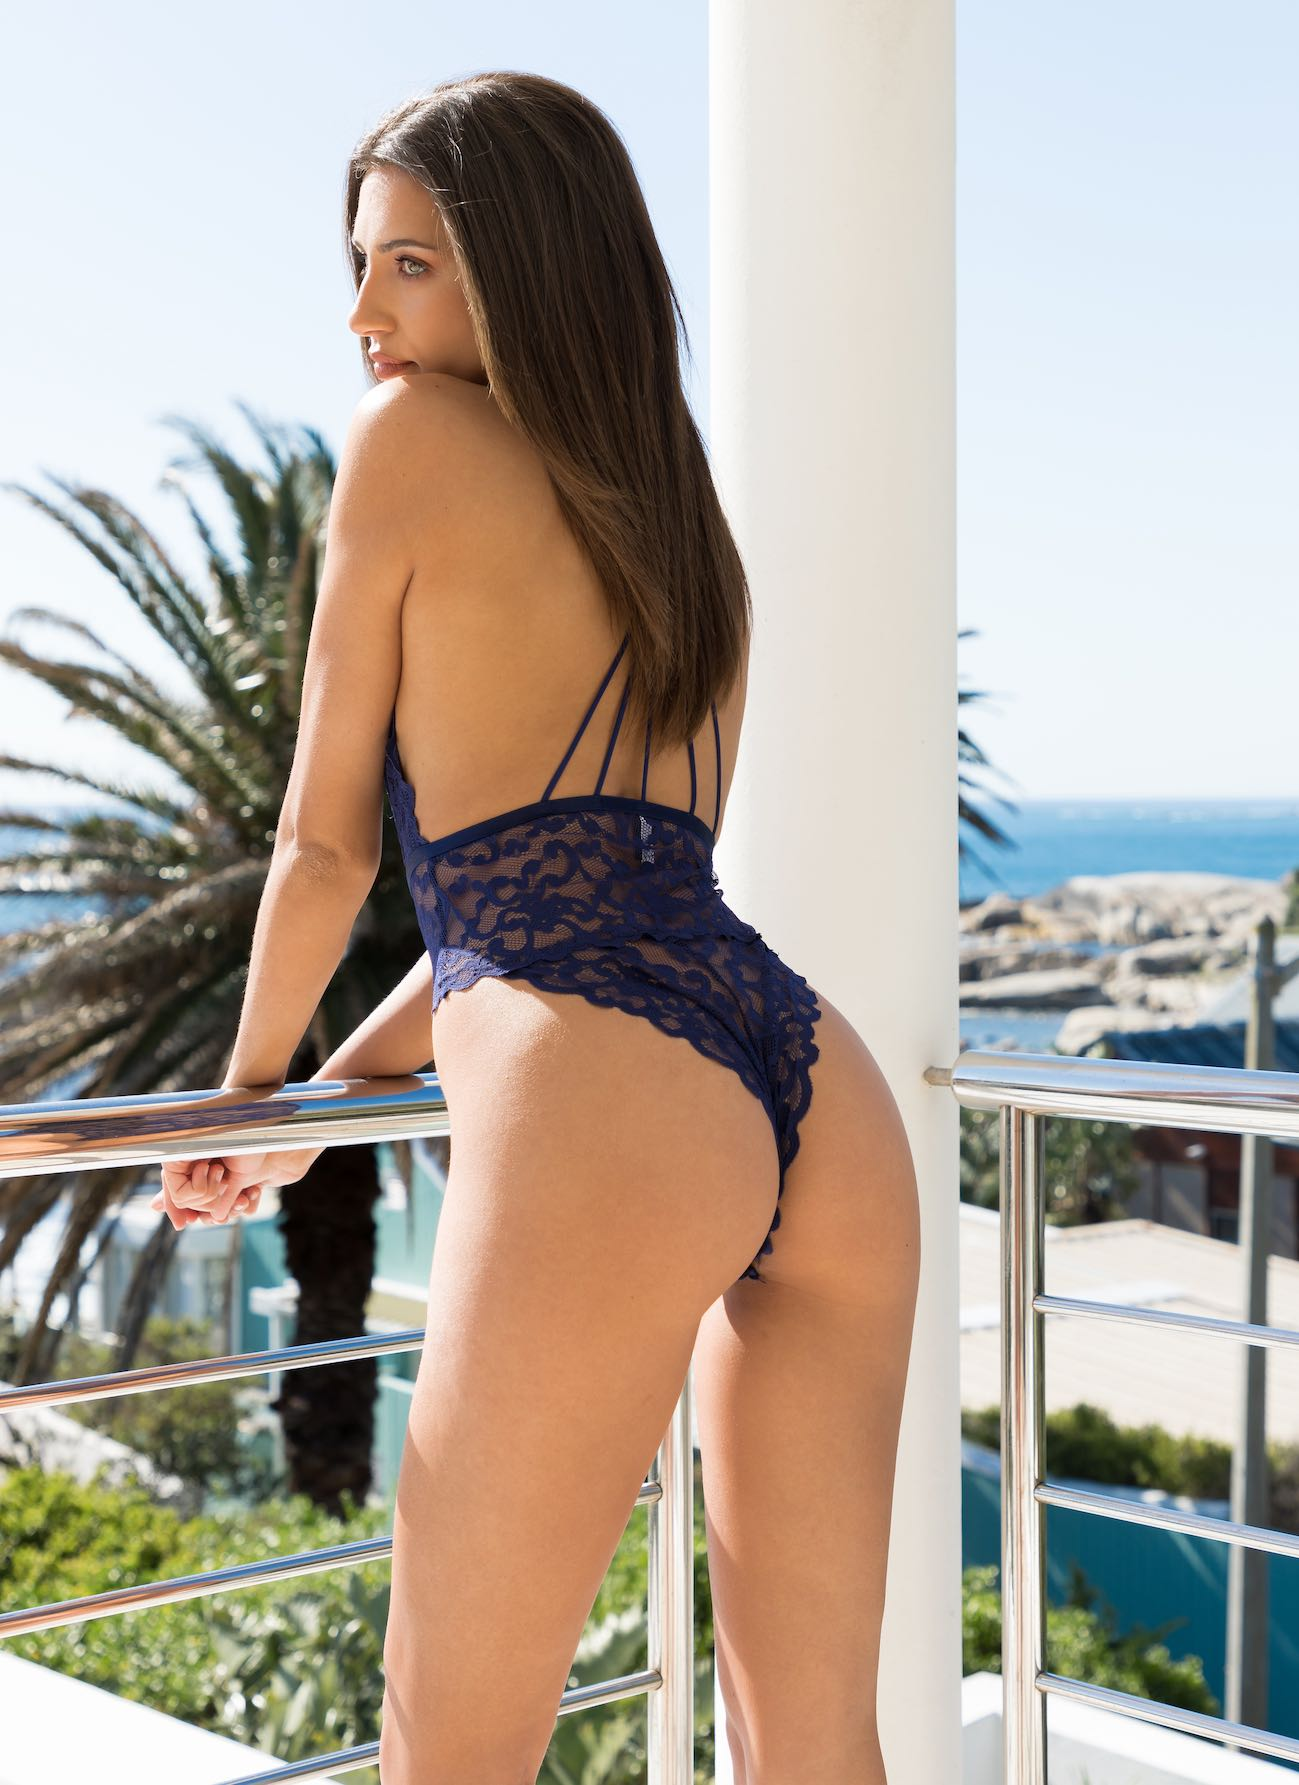 Our South African Babes feature with Tarryn Grung